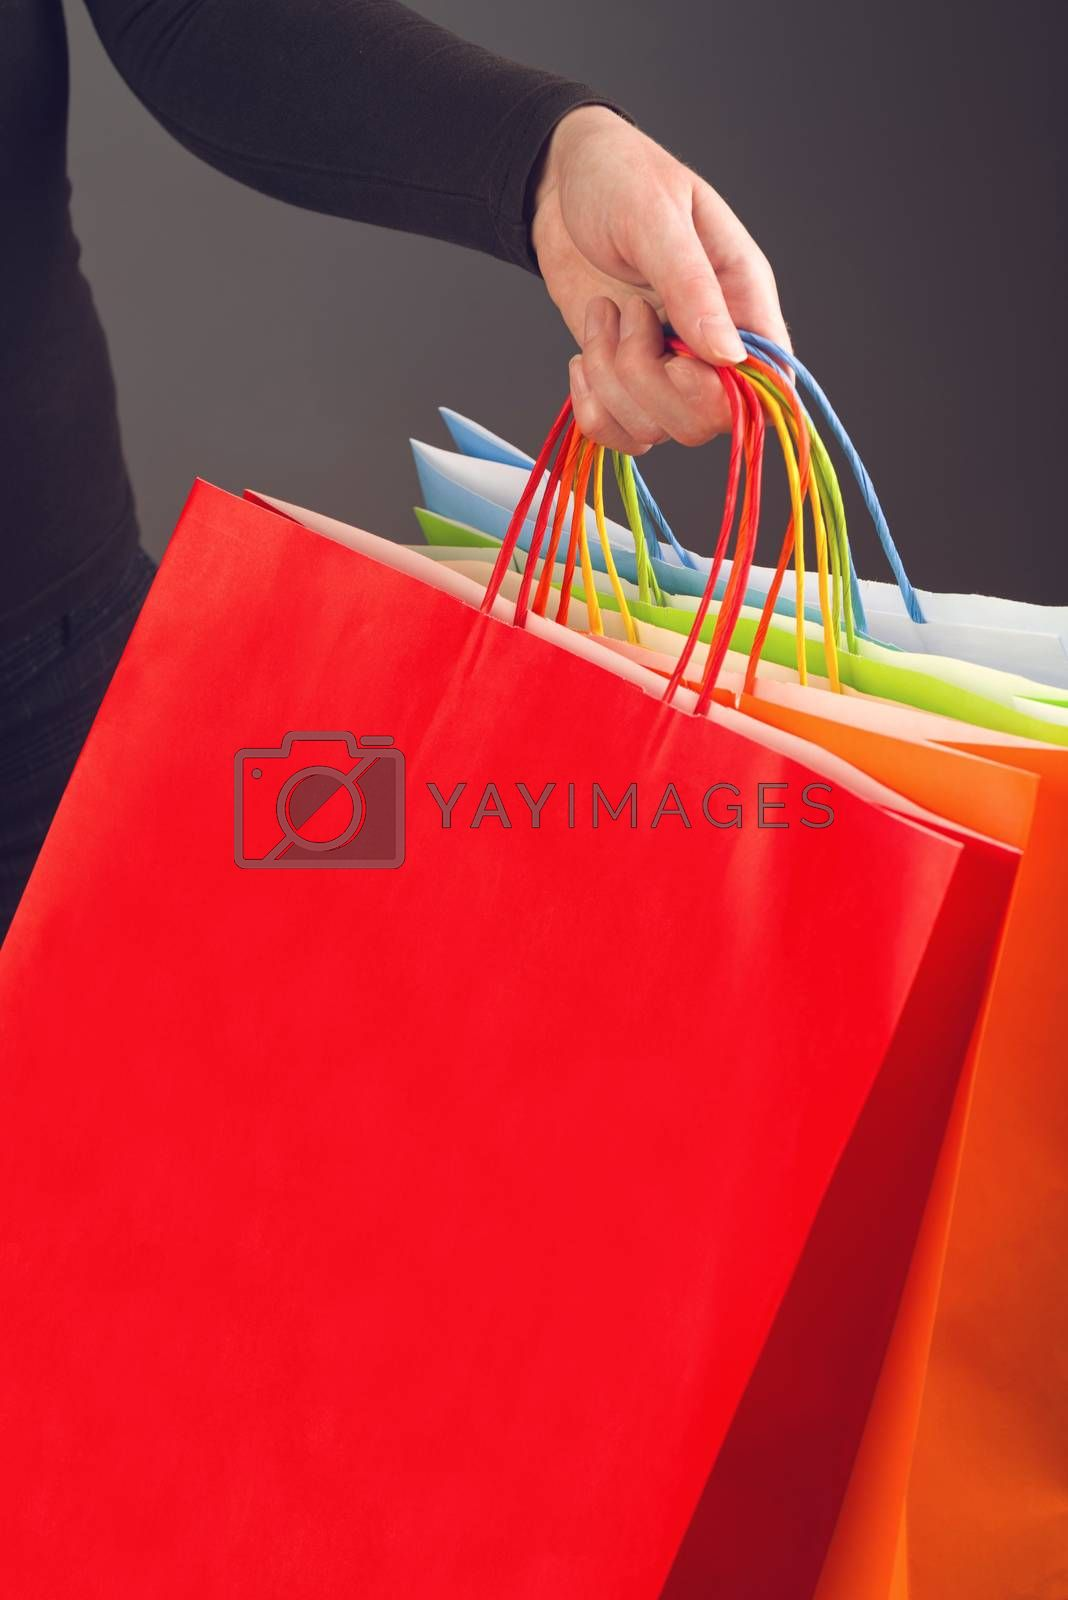 Woman holding colorful shopping bags for discount prices seasonal purchasing event. Saleout and clearance sale concept.